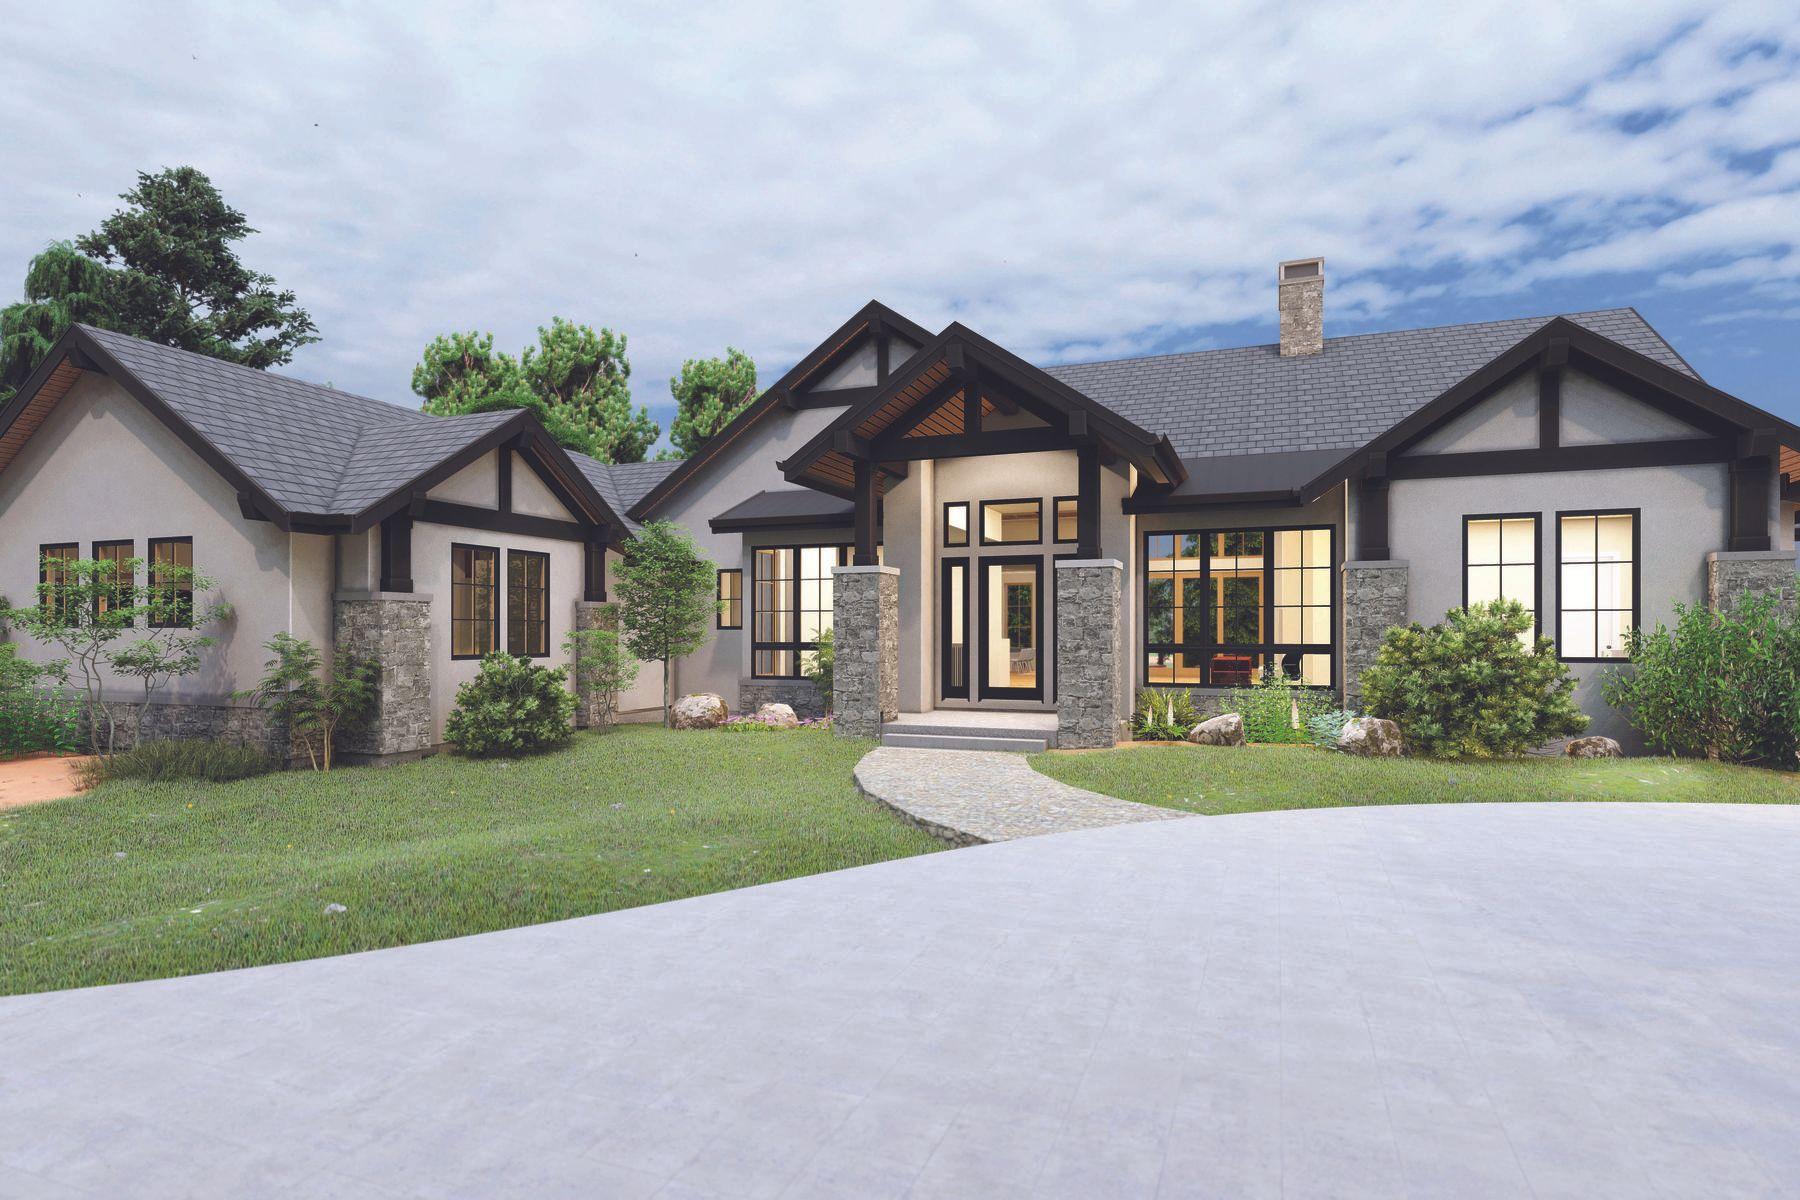 Single Family Homes for Active at 1136 Castle Pines Drive N, Castle Rock, Co, 80108 1136 Castle Pines Drive N Castle Rock, Colorado 80108 United States